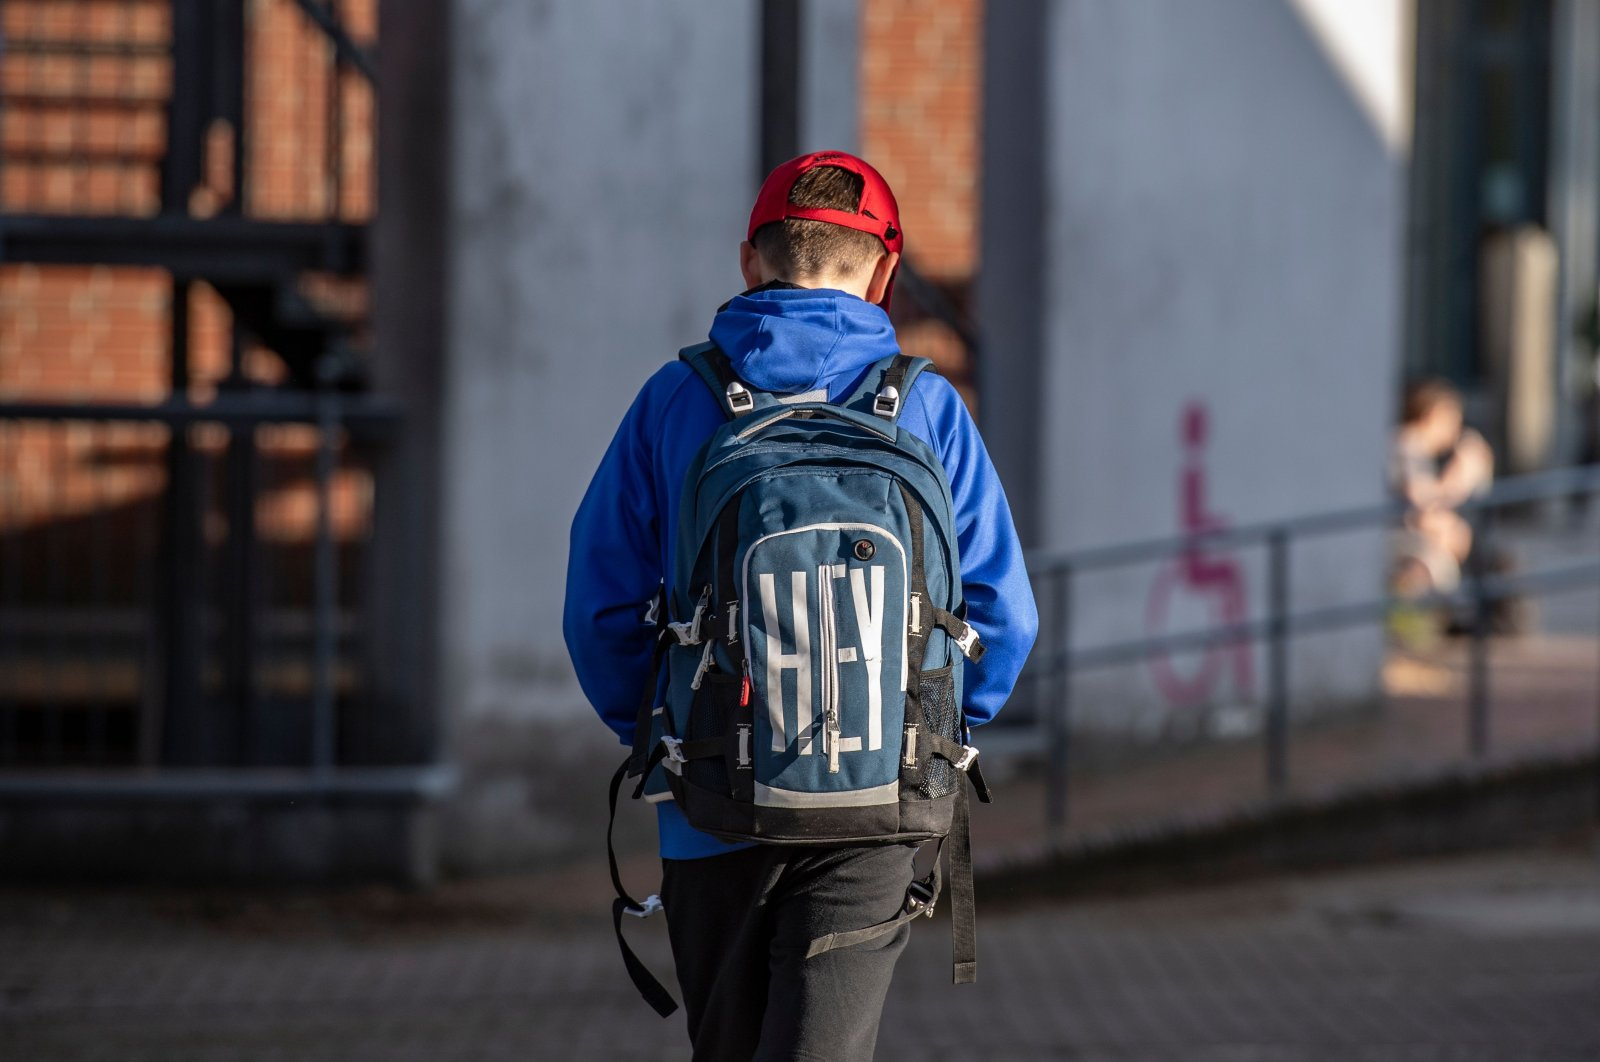 A student heads into a school as education resumes after the summer break amid the COVID-19 pandemic, in Rostock, Germany, Aug. 3, 2020. (AFP Photo)